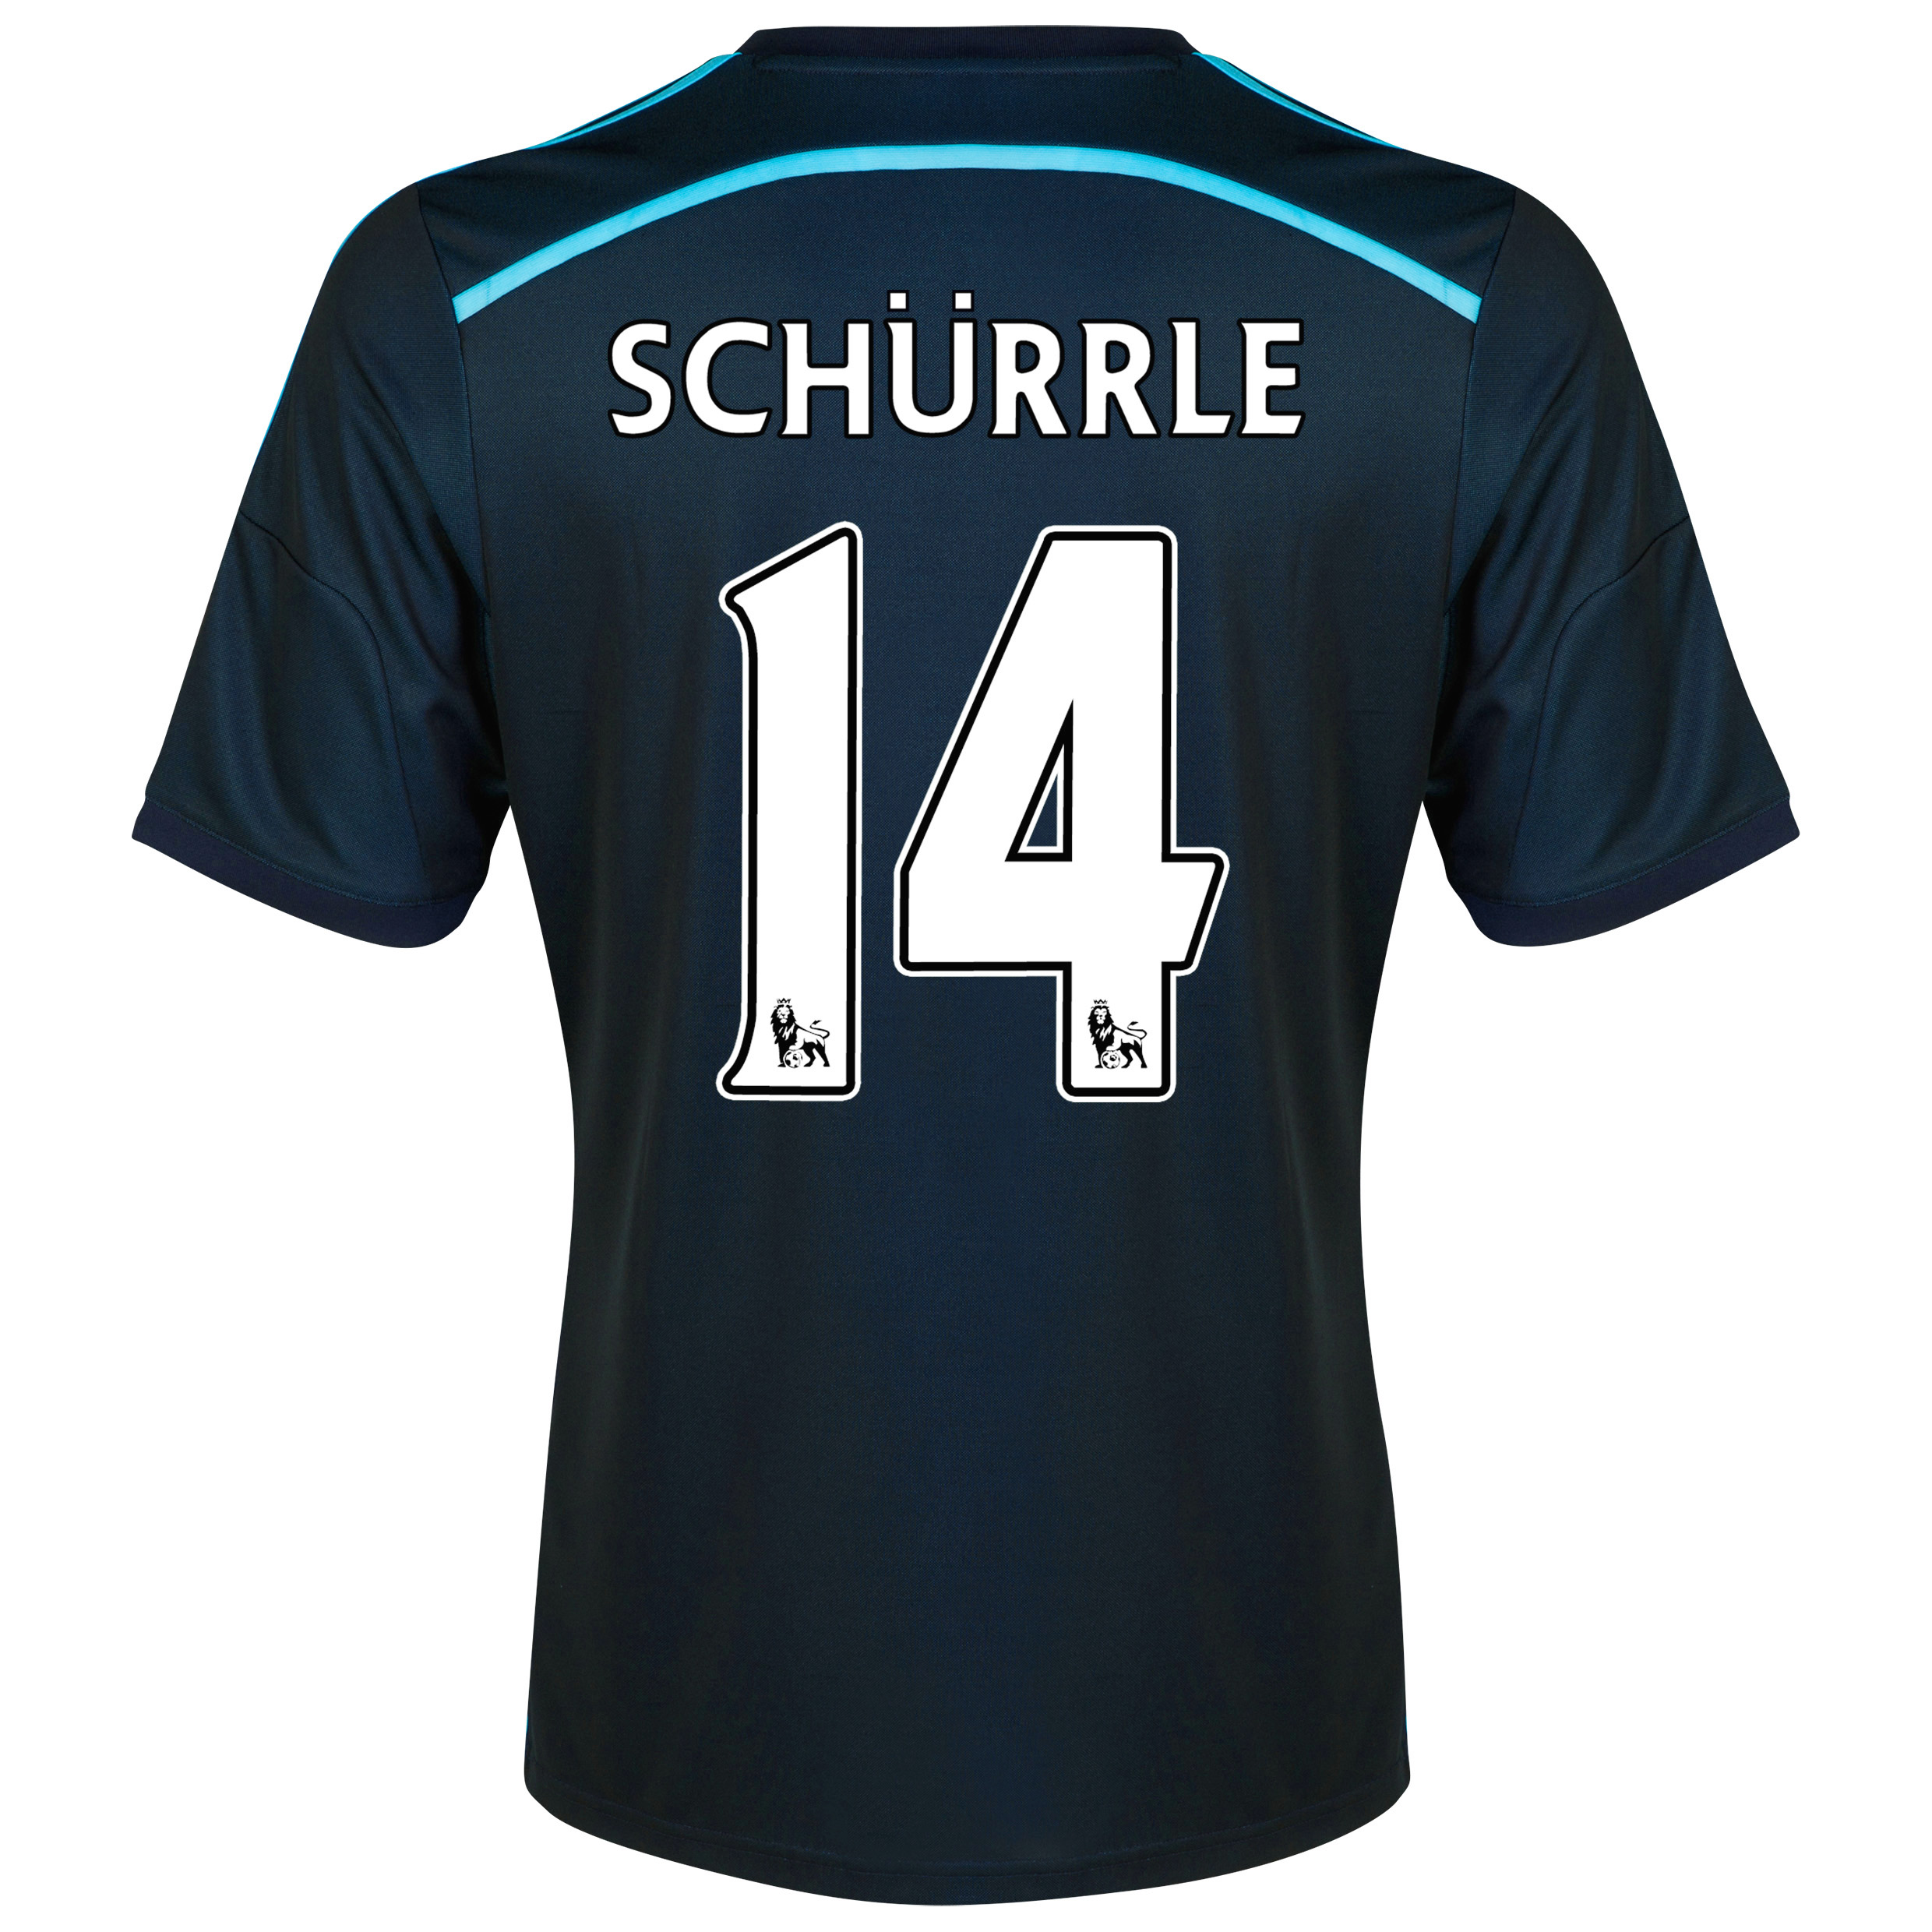 Chelsea Third Shirt 2014/15 with Schurrle 14 printing